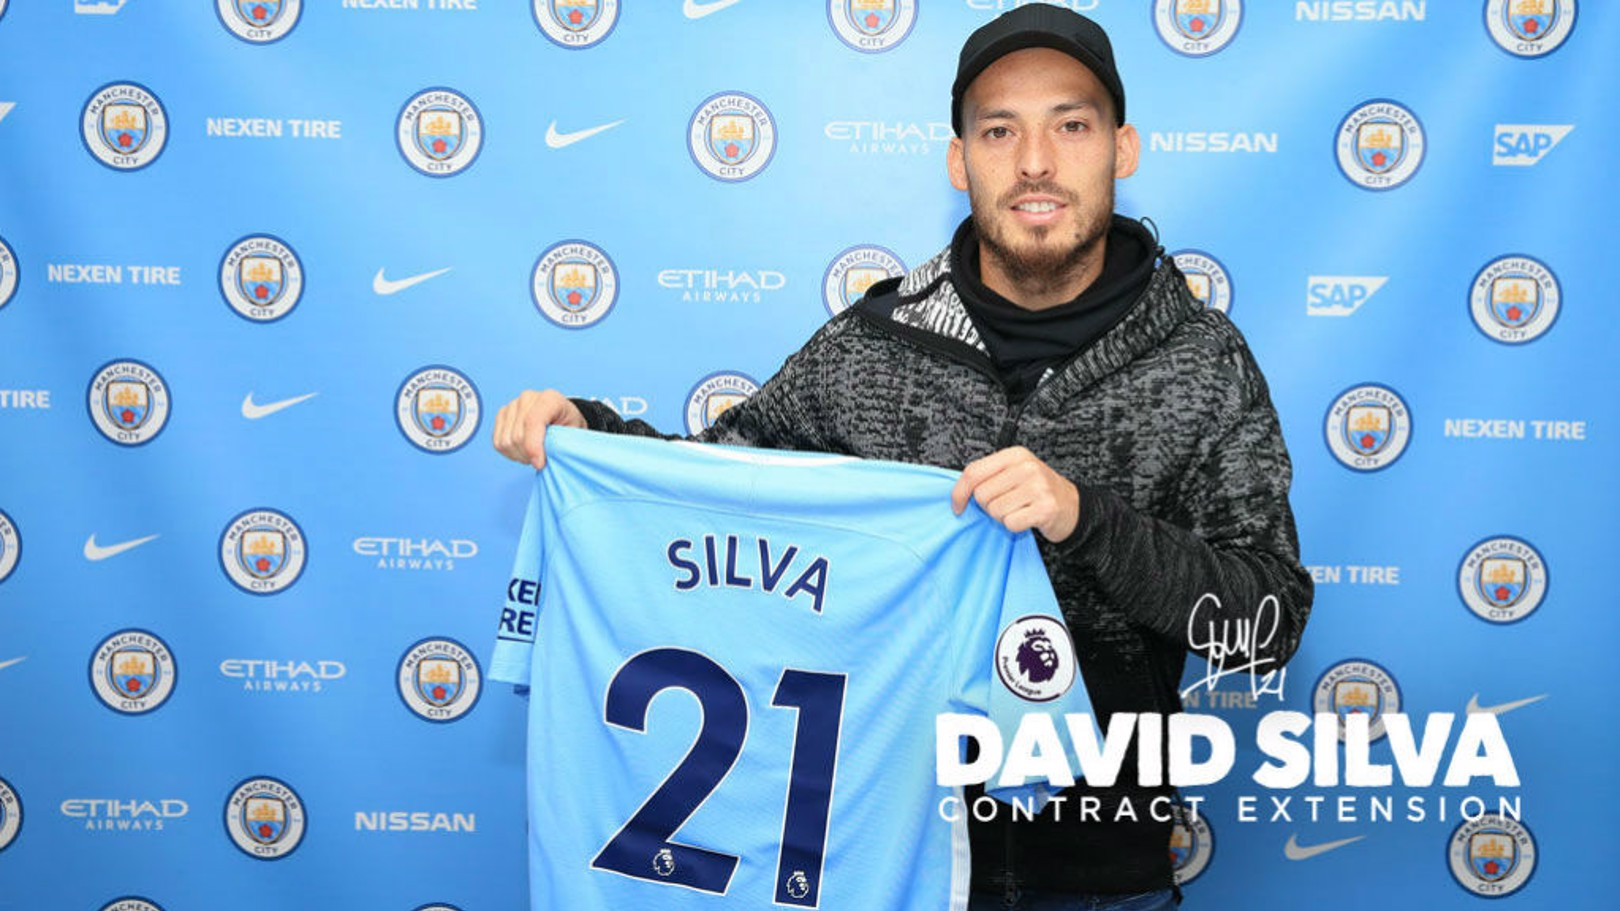 STAYING POWER: David Silva has signed a contract extension with Manchester City